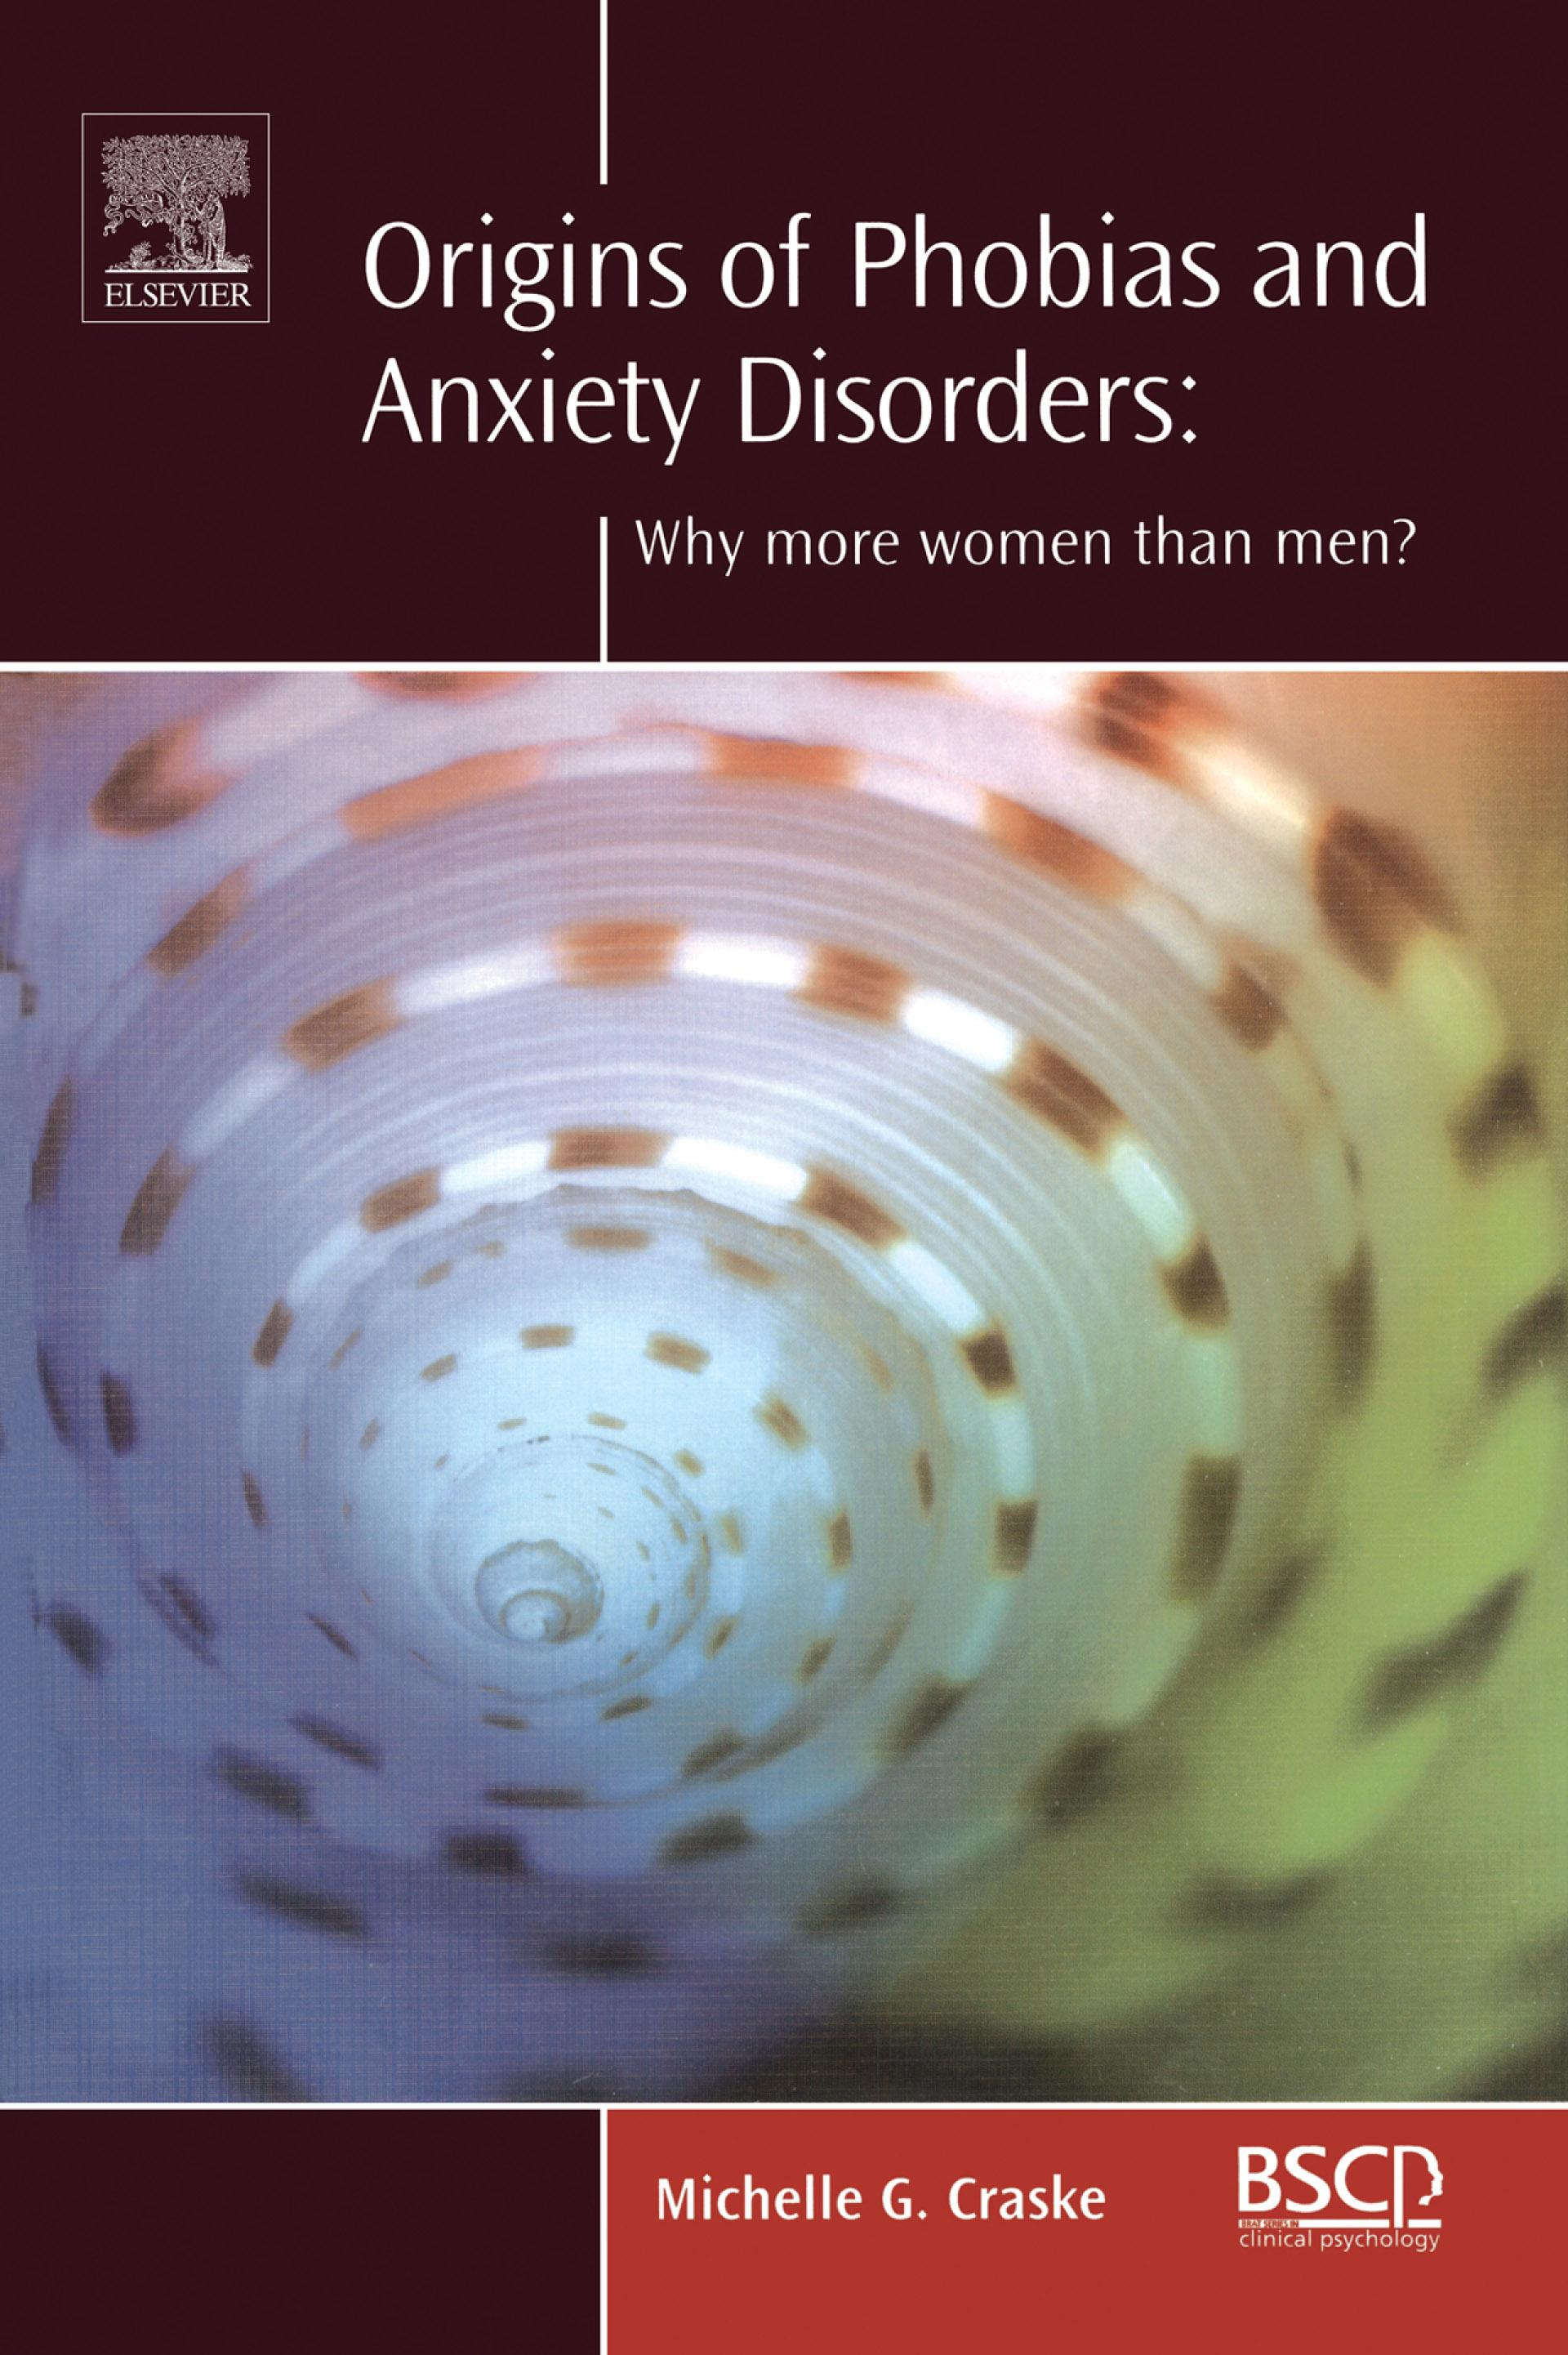 Michelle G.  Craske - Origins of Phobias and Anxiety Disorders: Why More Women than Men?